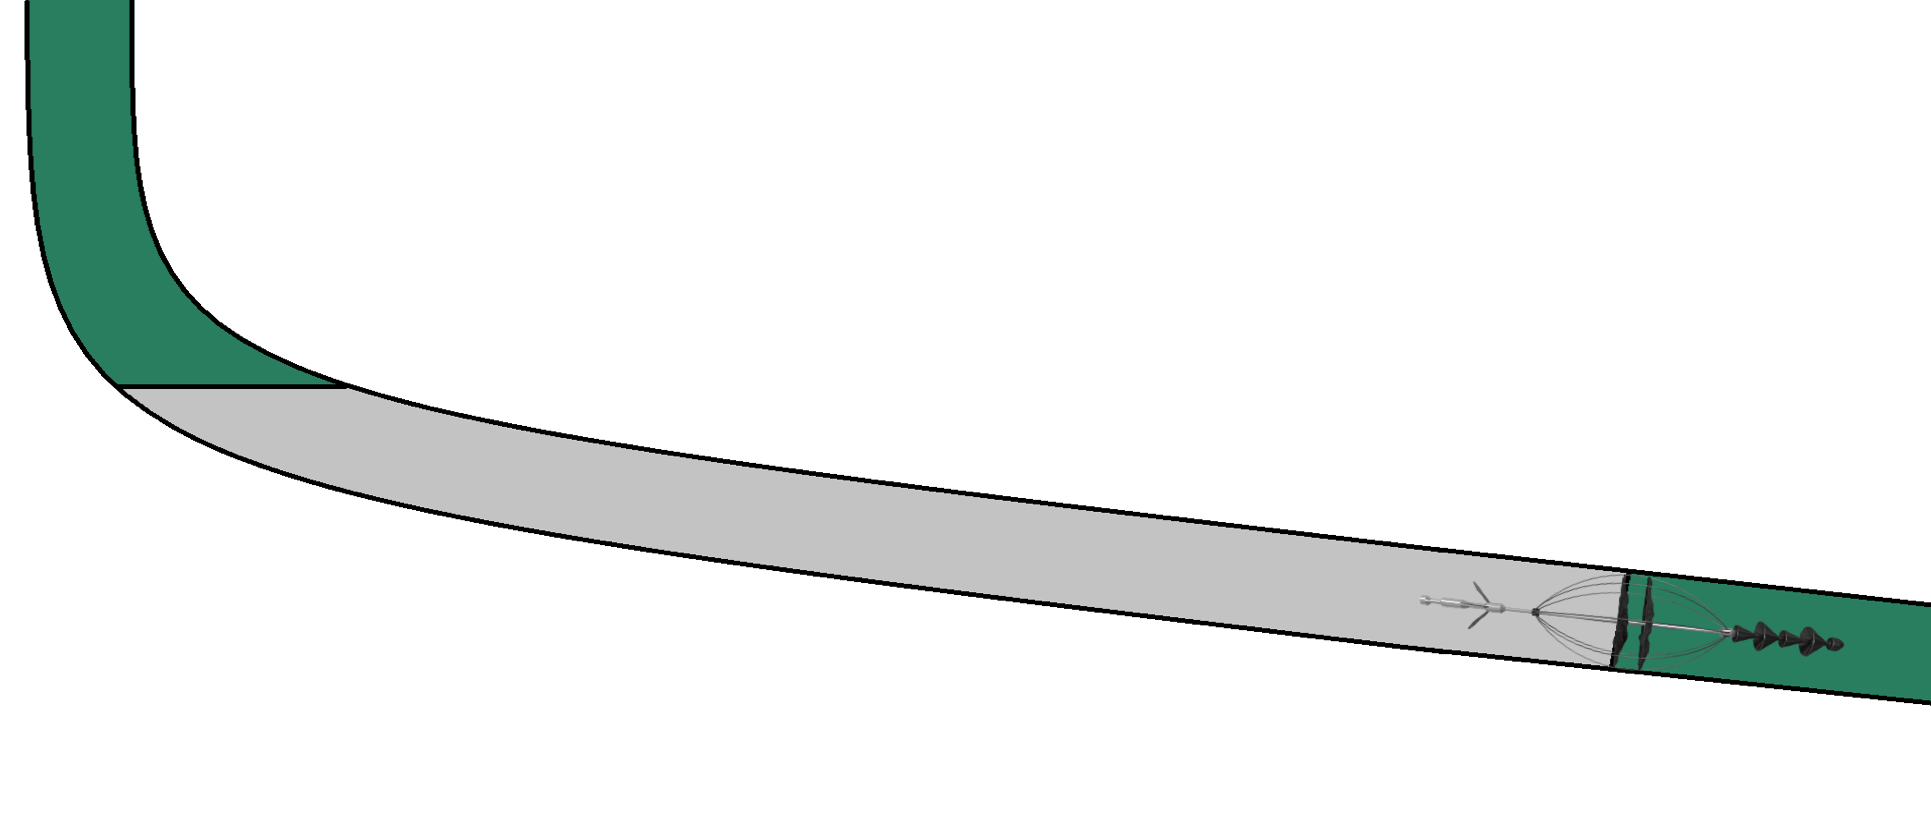 Use of CST as base in a high angle well - Perigon